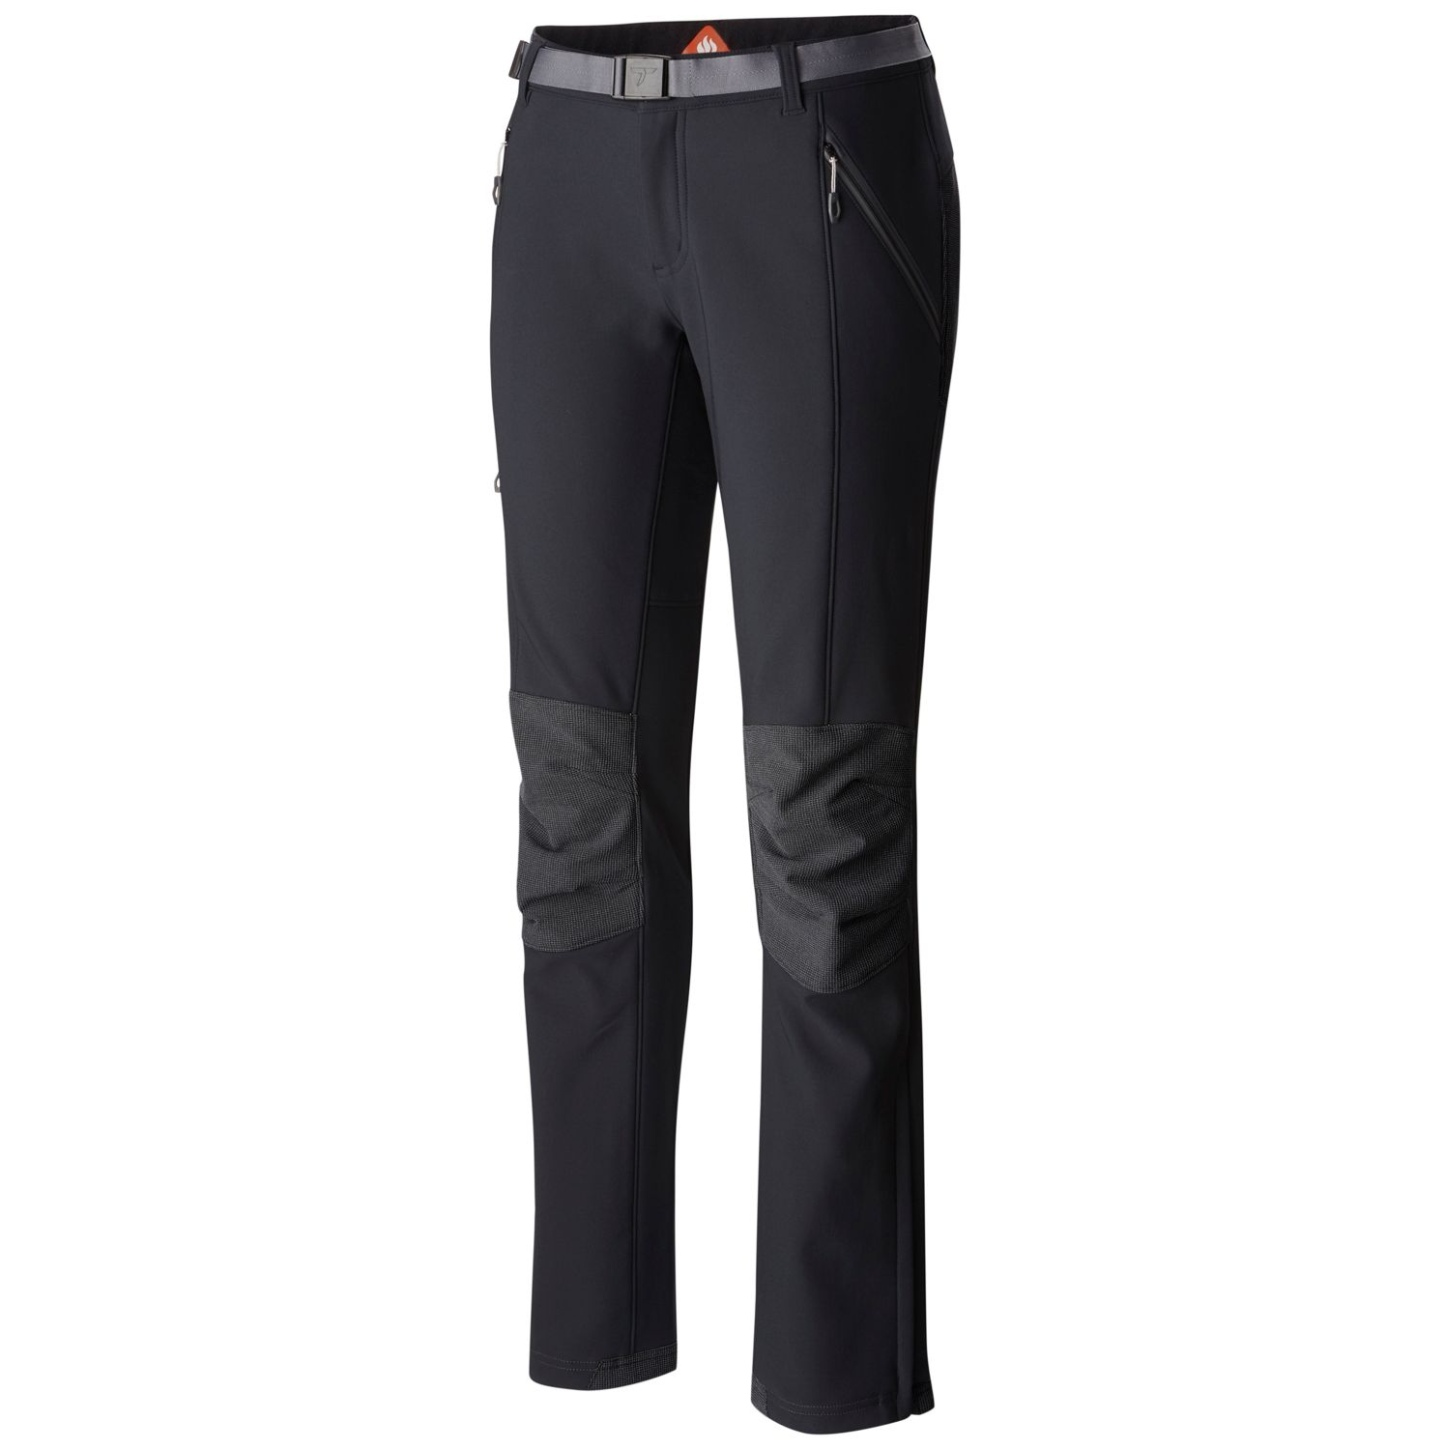 Columbia Women's Titan Ridge II Trousers Black, Shark-30